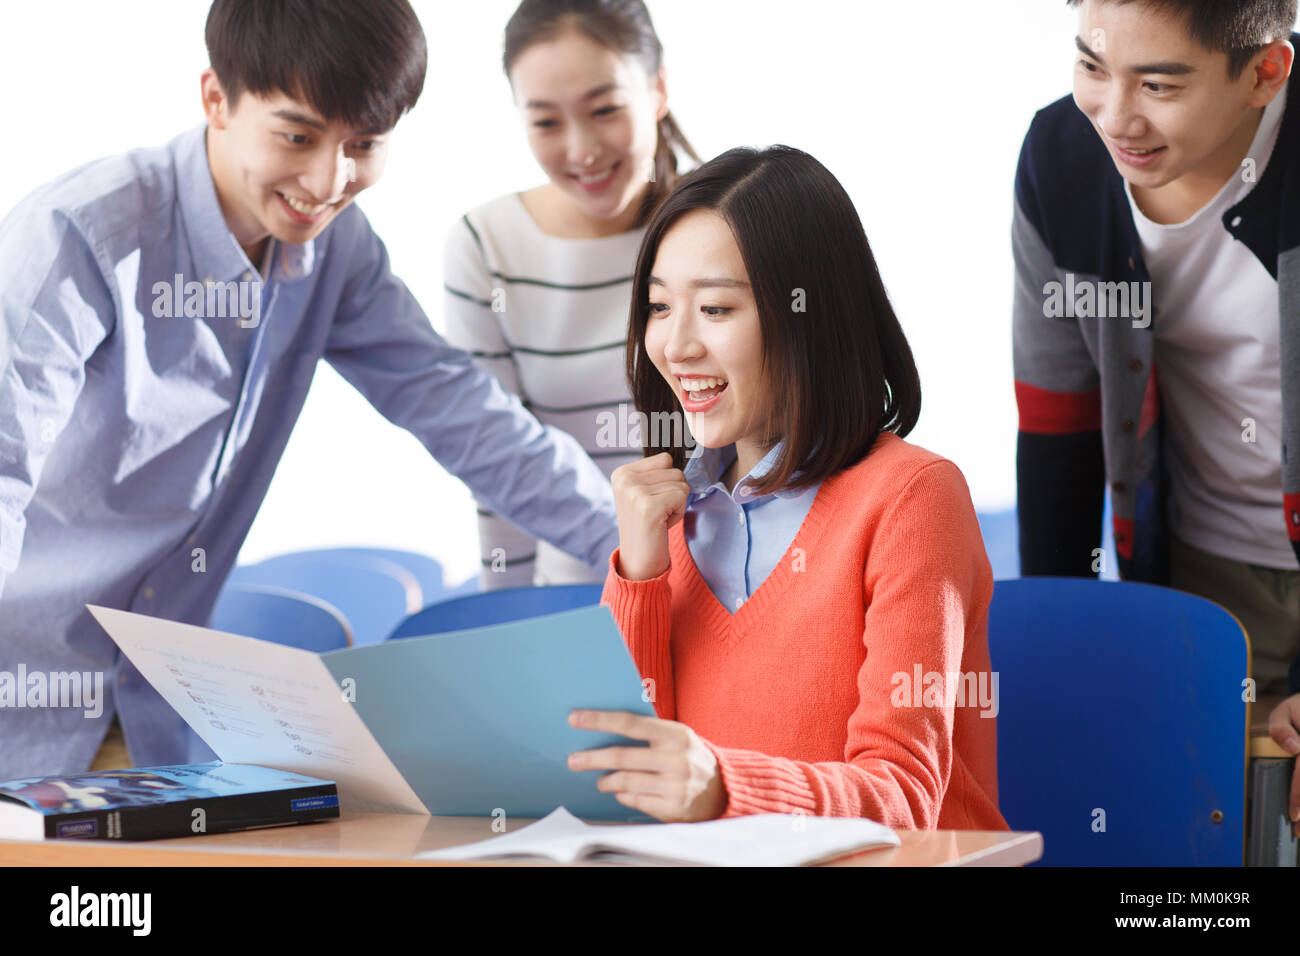 Students in the classroom - Stock Image